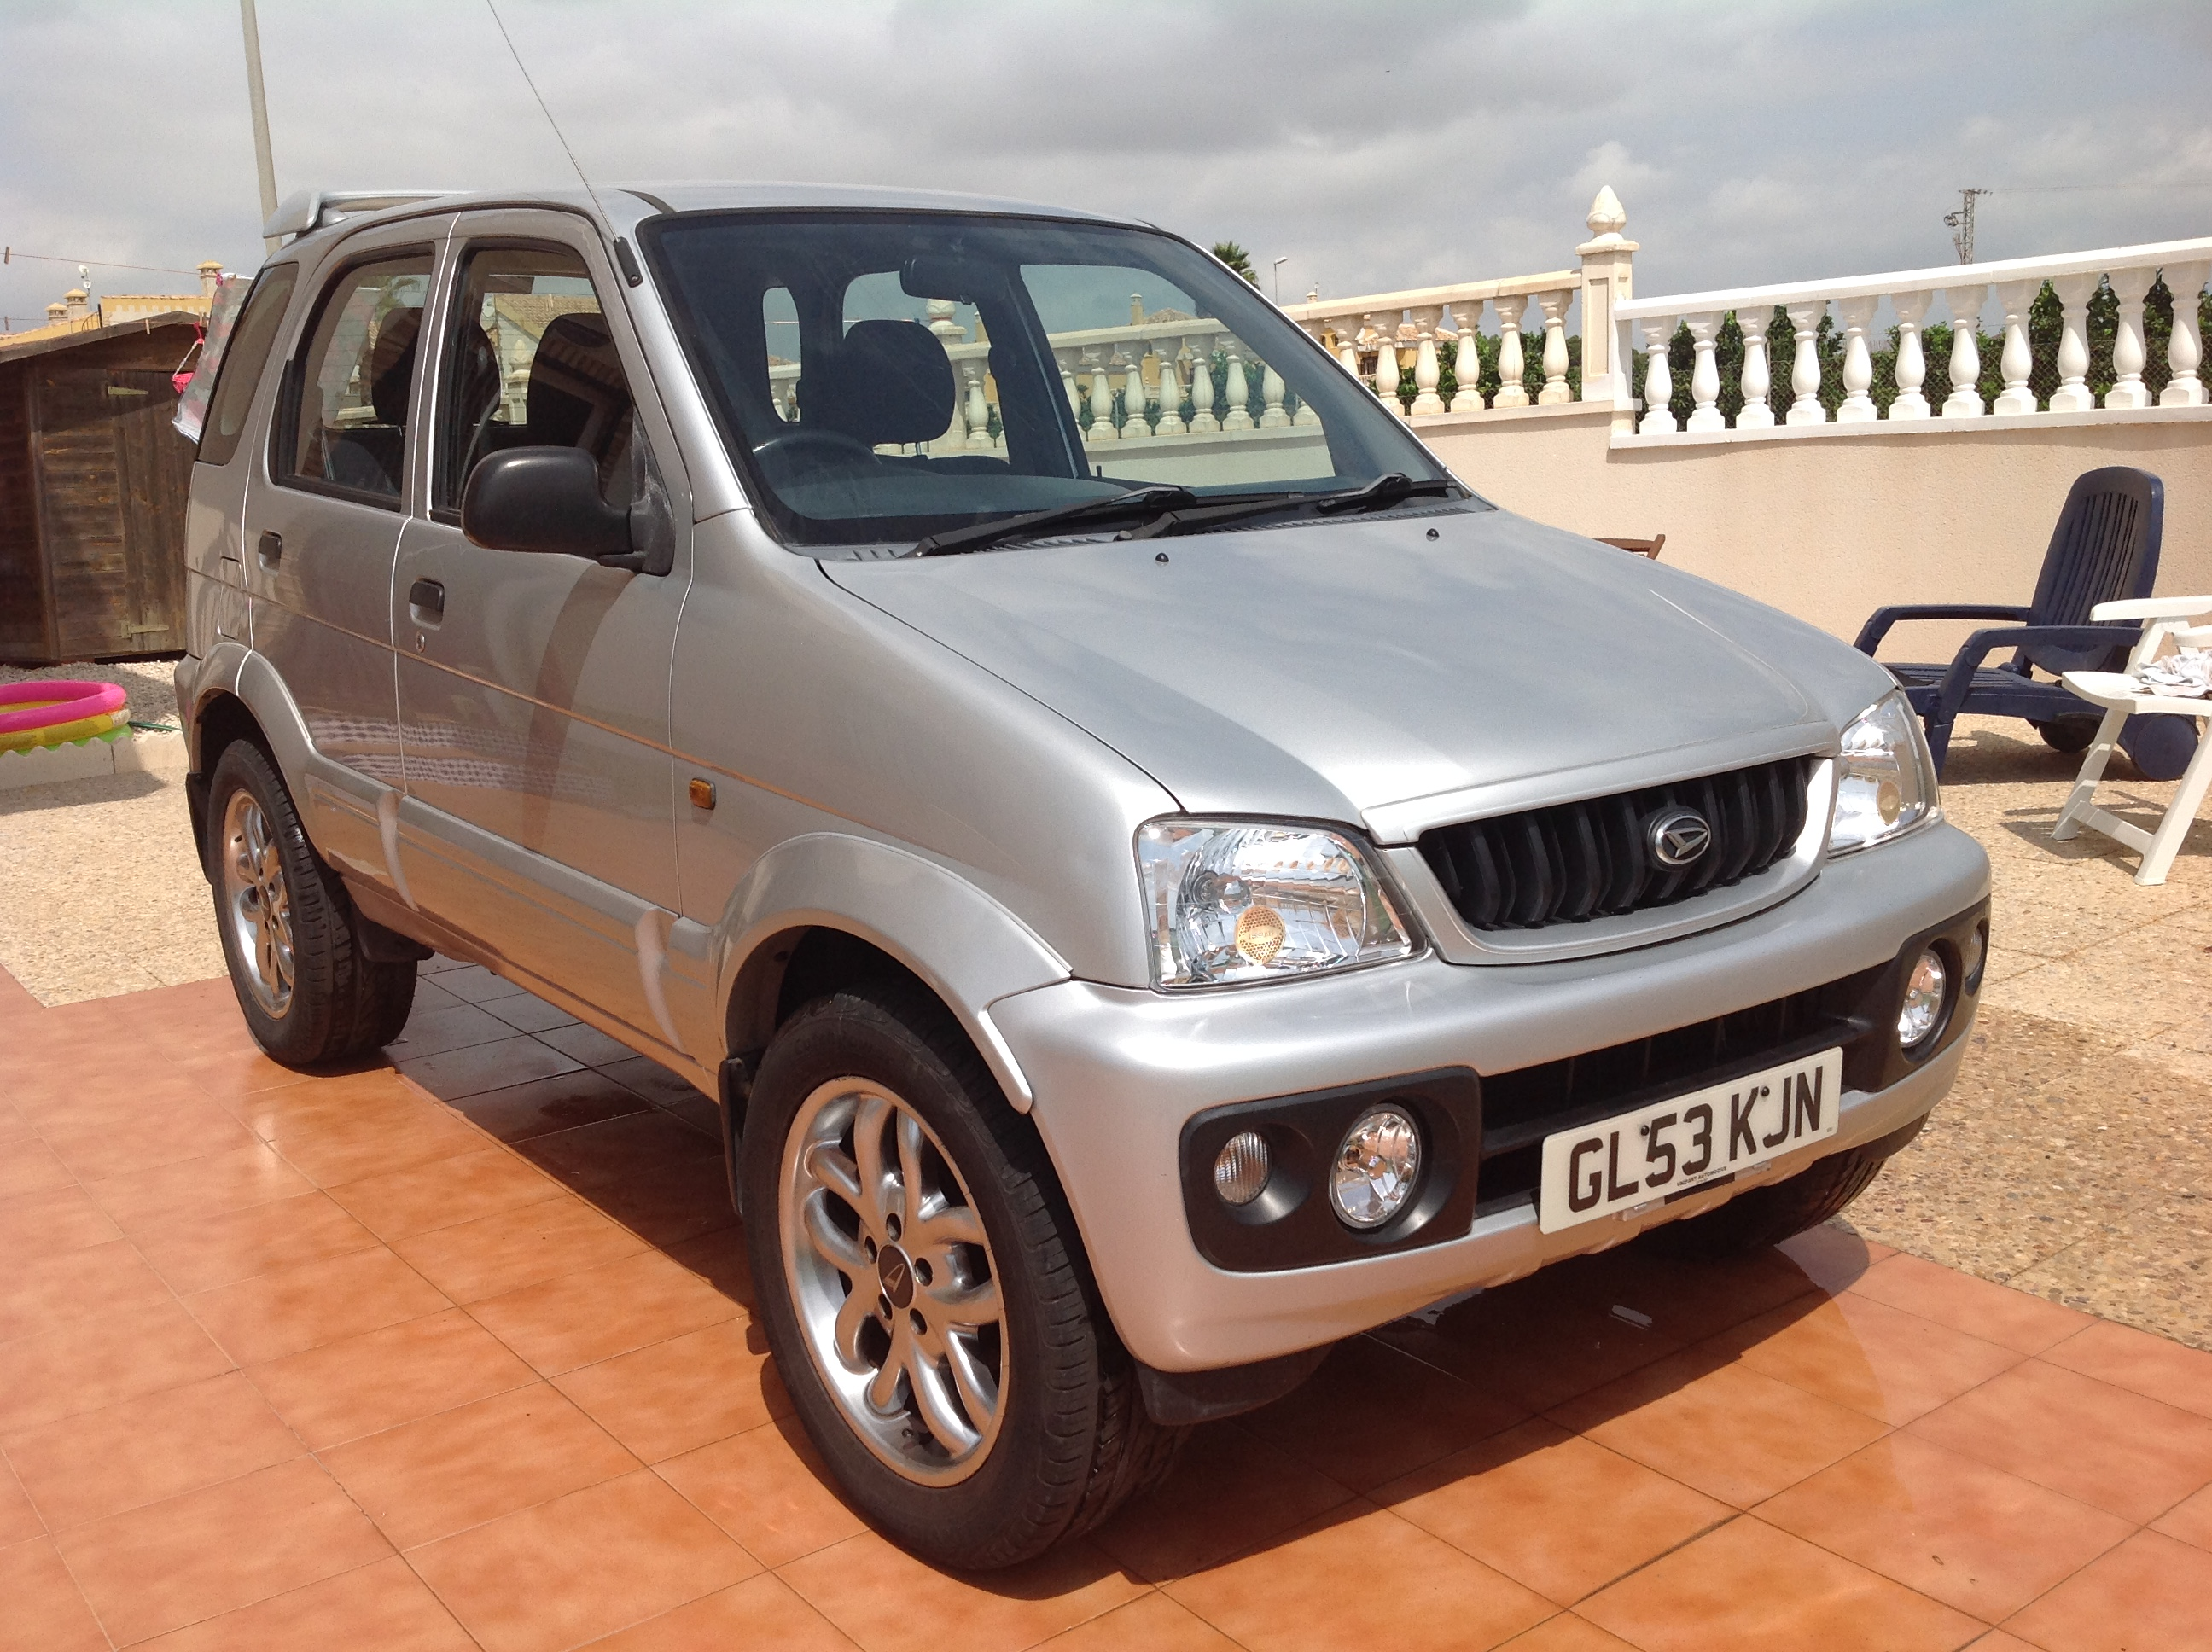 For Sale: Daihatsu Terios 4x4 Automatic